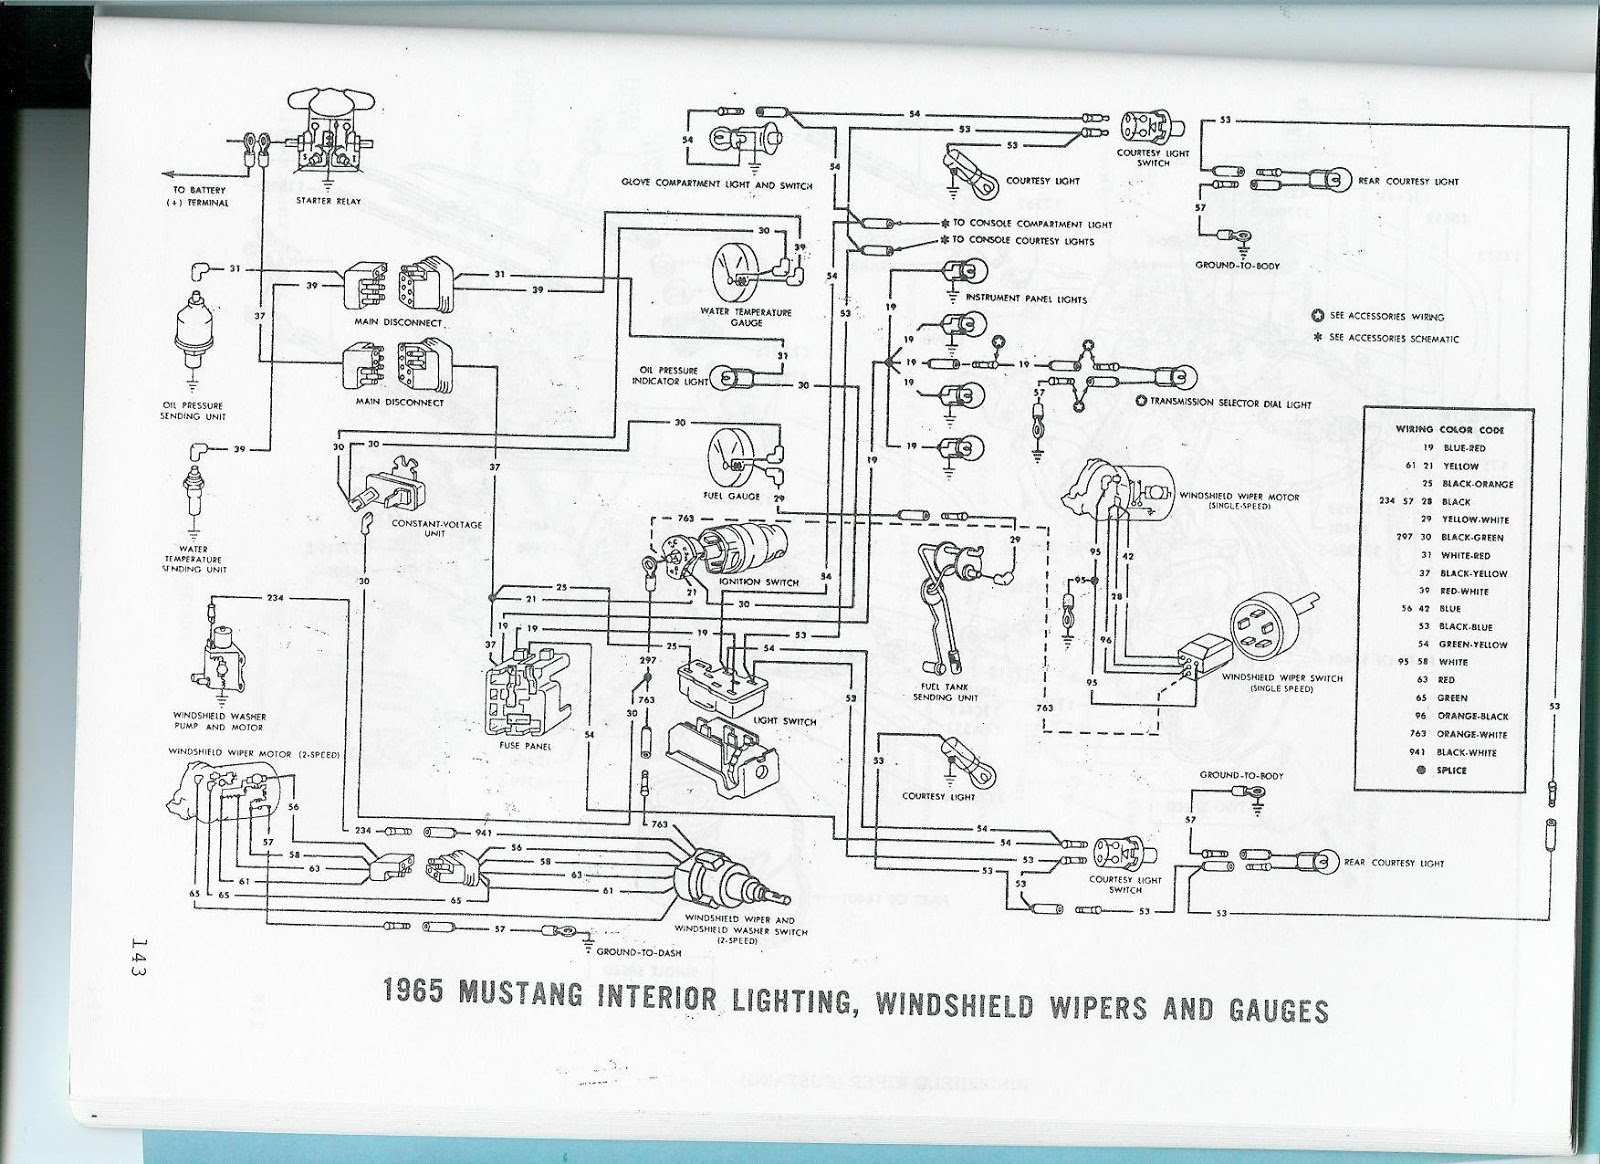 1967 Gto Fuse Box Wiring Diagram Content Resource Of Pontiac Care Feeding Ponies 1965 Mustang Diagrams Ford